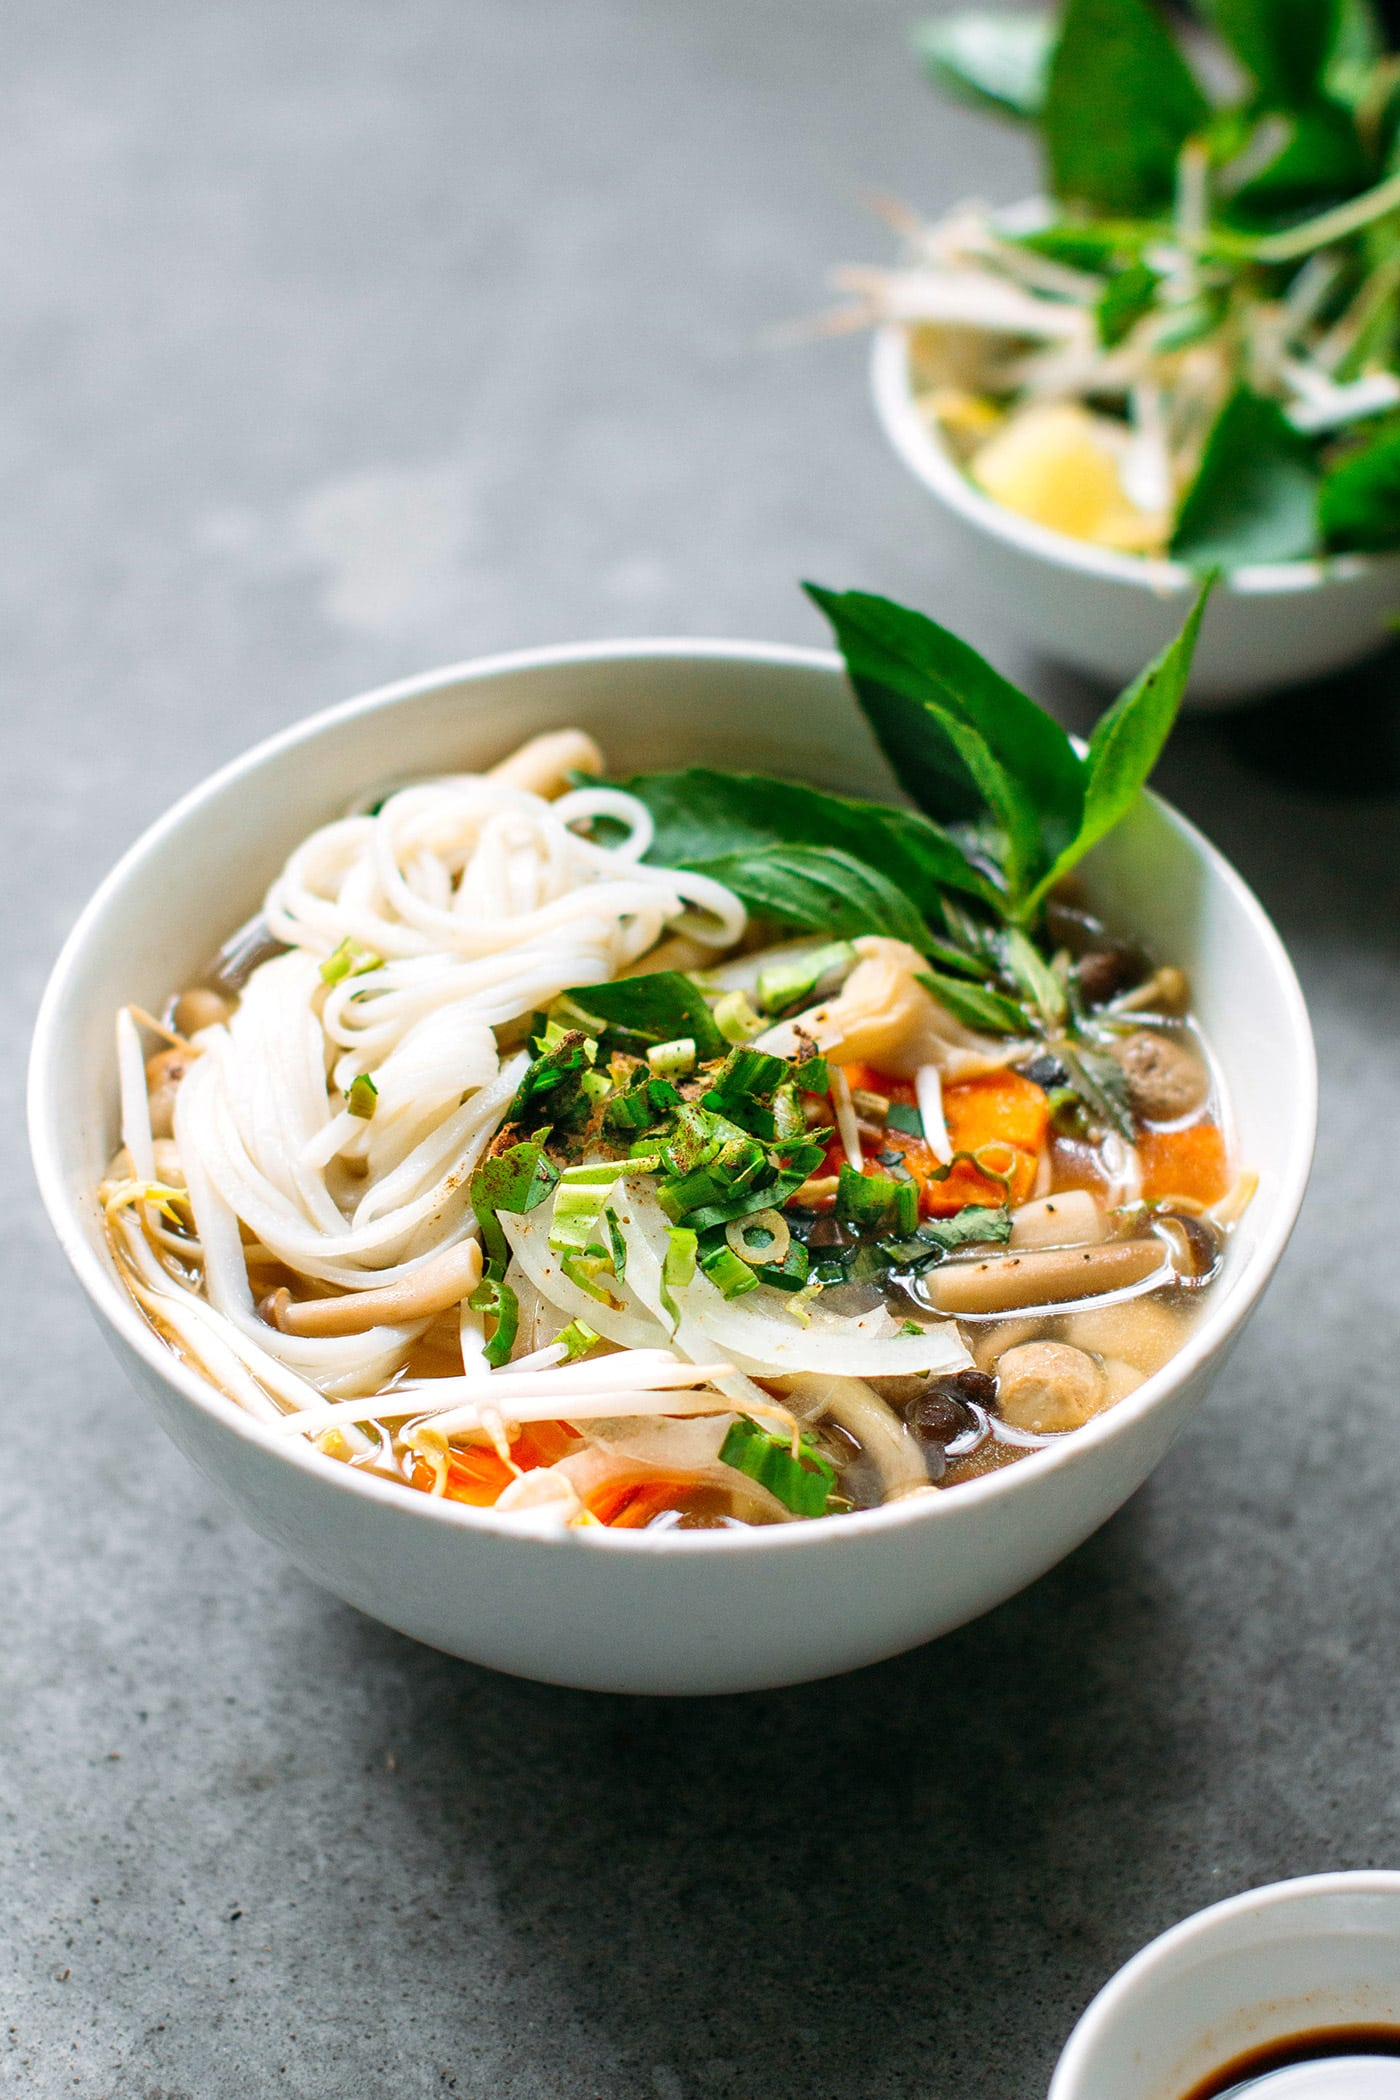 A Guide to Eating Vegan in Viet Nam - Phở